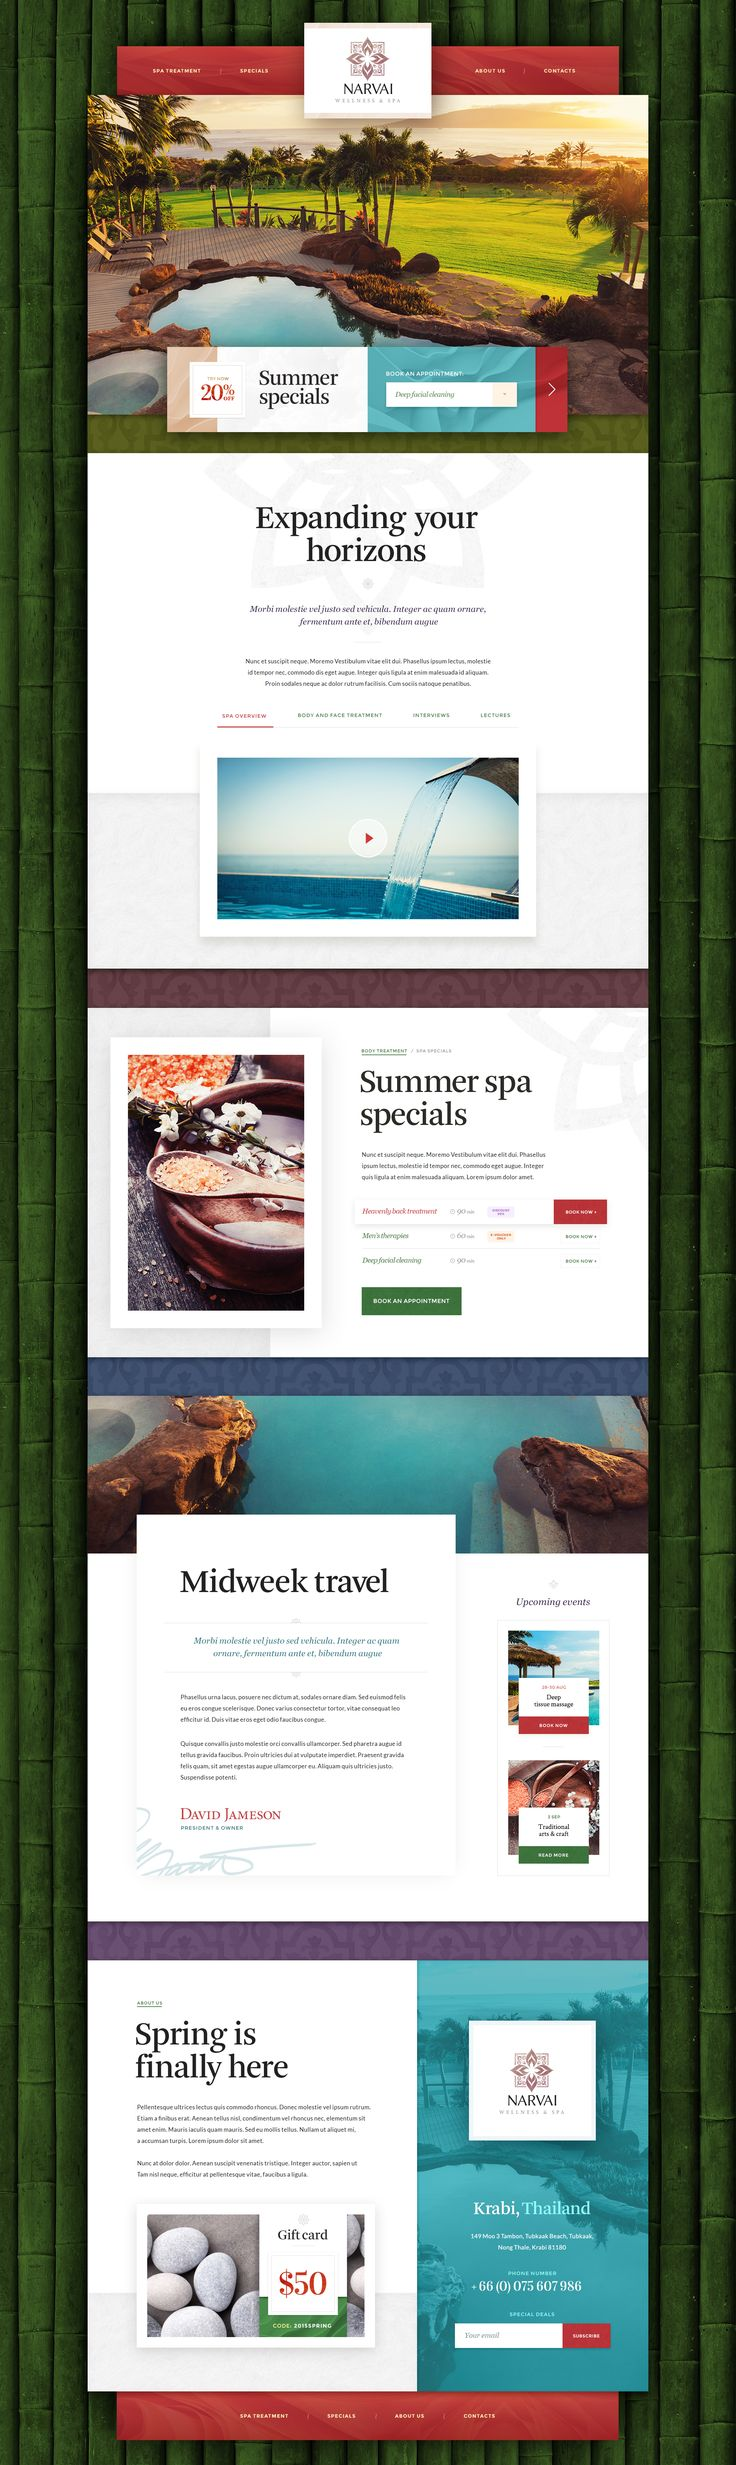 Spa website design and user interface concept. Delicate textures, powerful typography and strong photography. Mike | Creative Mints … is back!